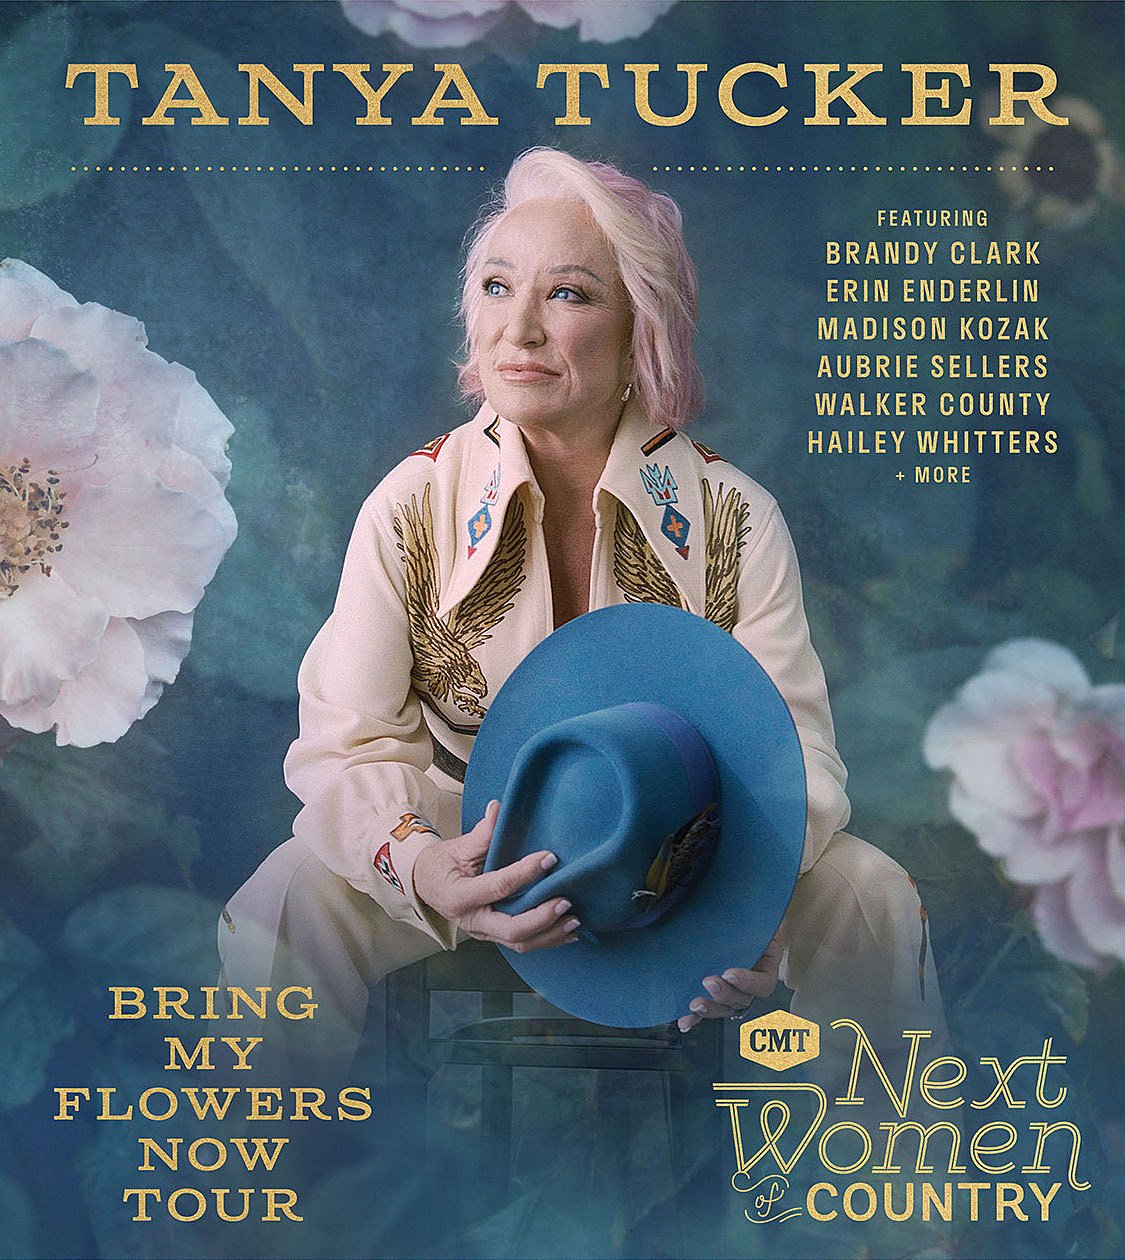 tayna-tucker-cmt-tour-poster